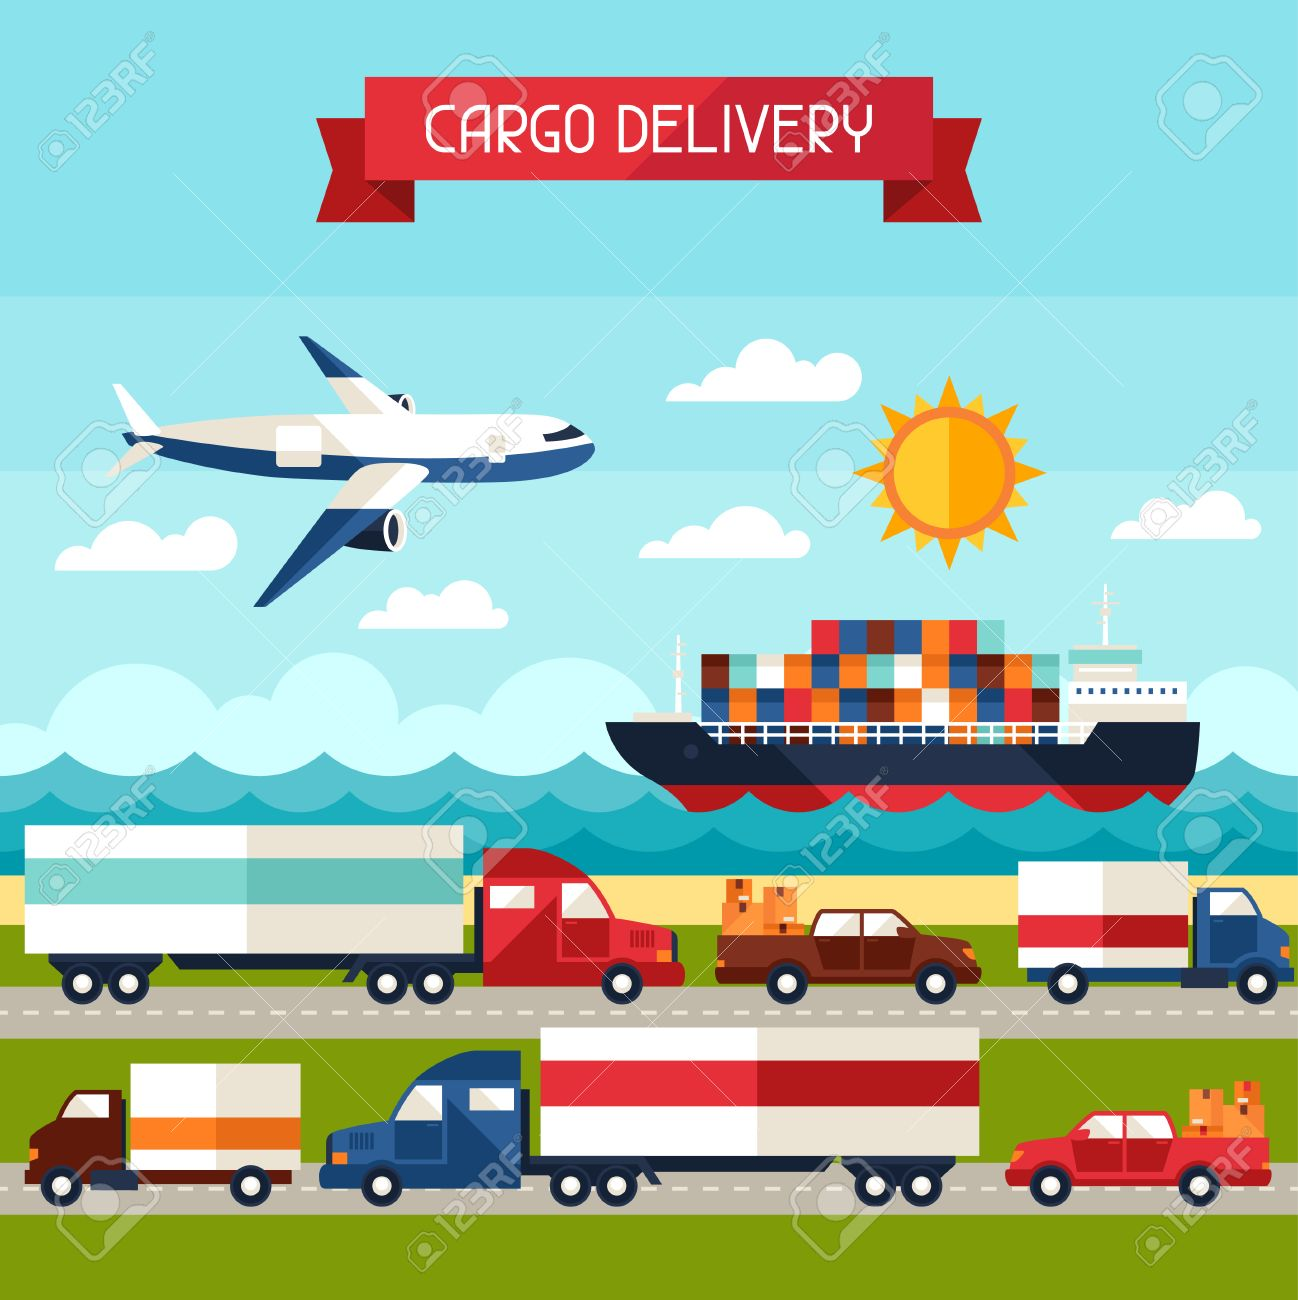 Freight cargo transport background in flat design style. Stock Vector - 44348960